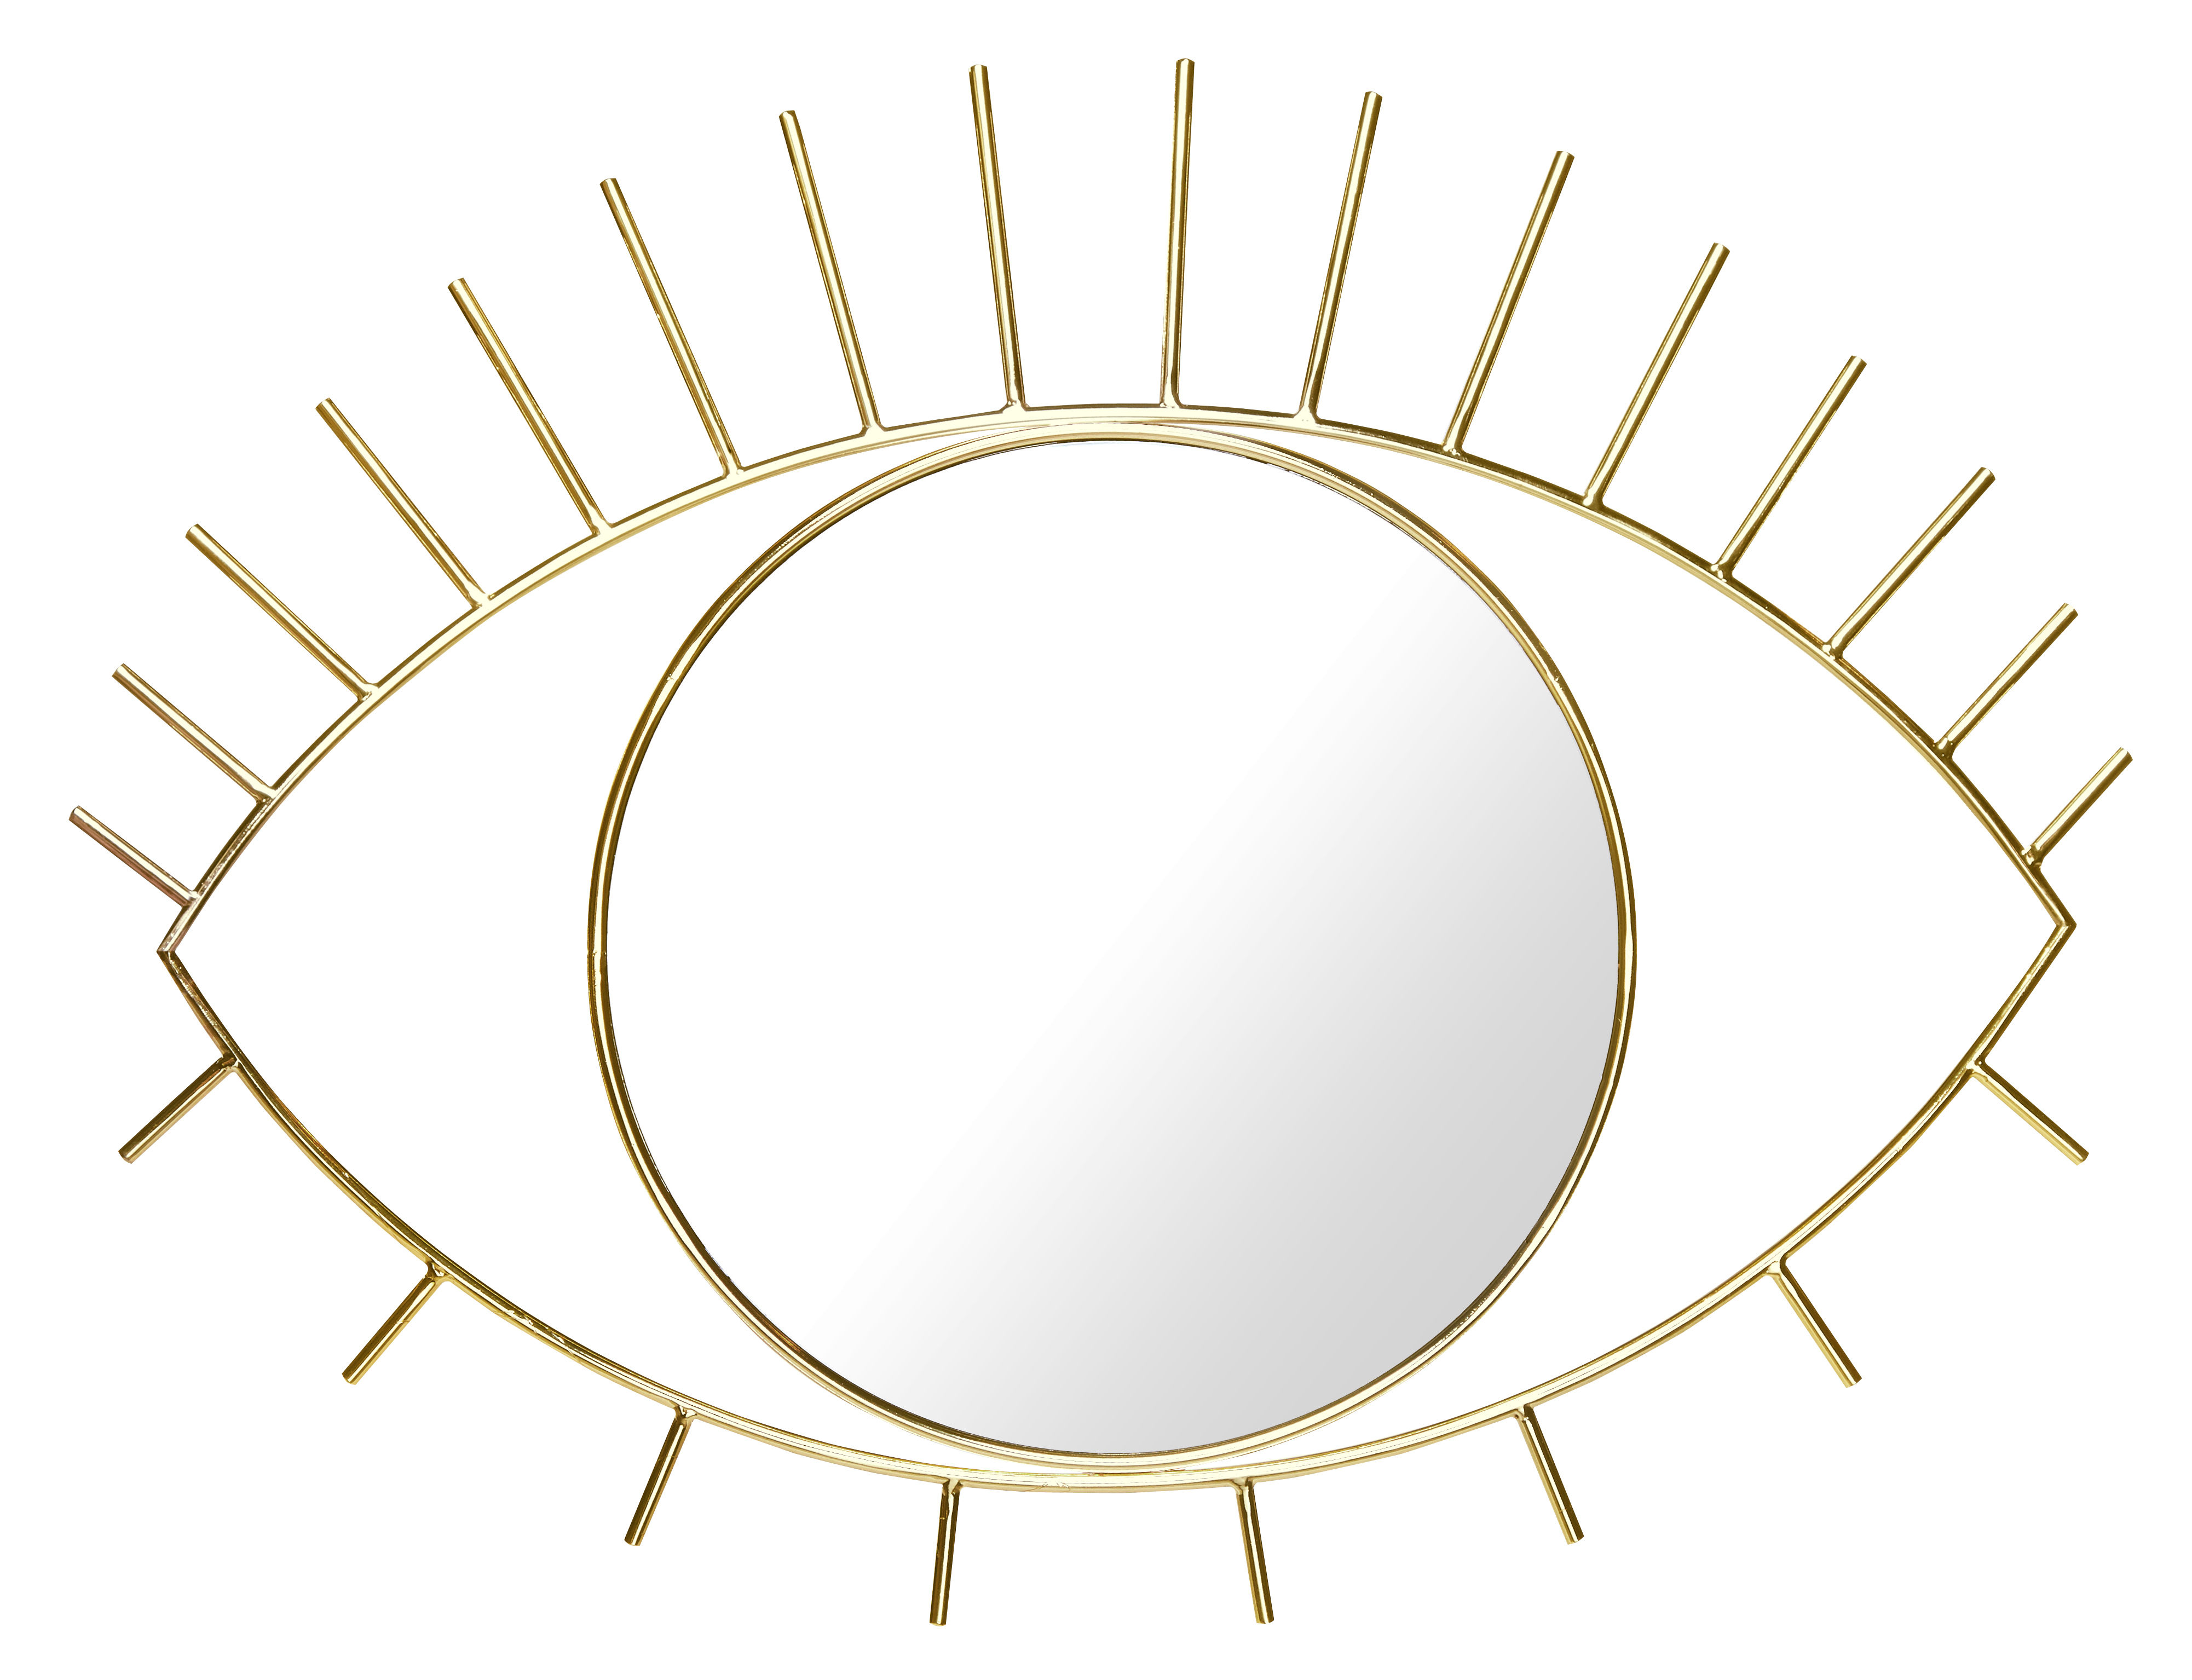 Decoration - Mirrors - Cyclops Large Wall mirror - / L 53 x H 41 cm by Doiy - Large / Gold - Glass, Metal